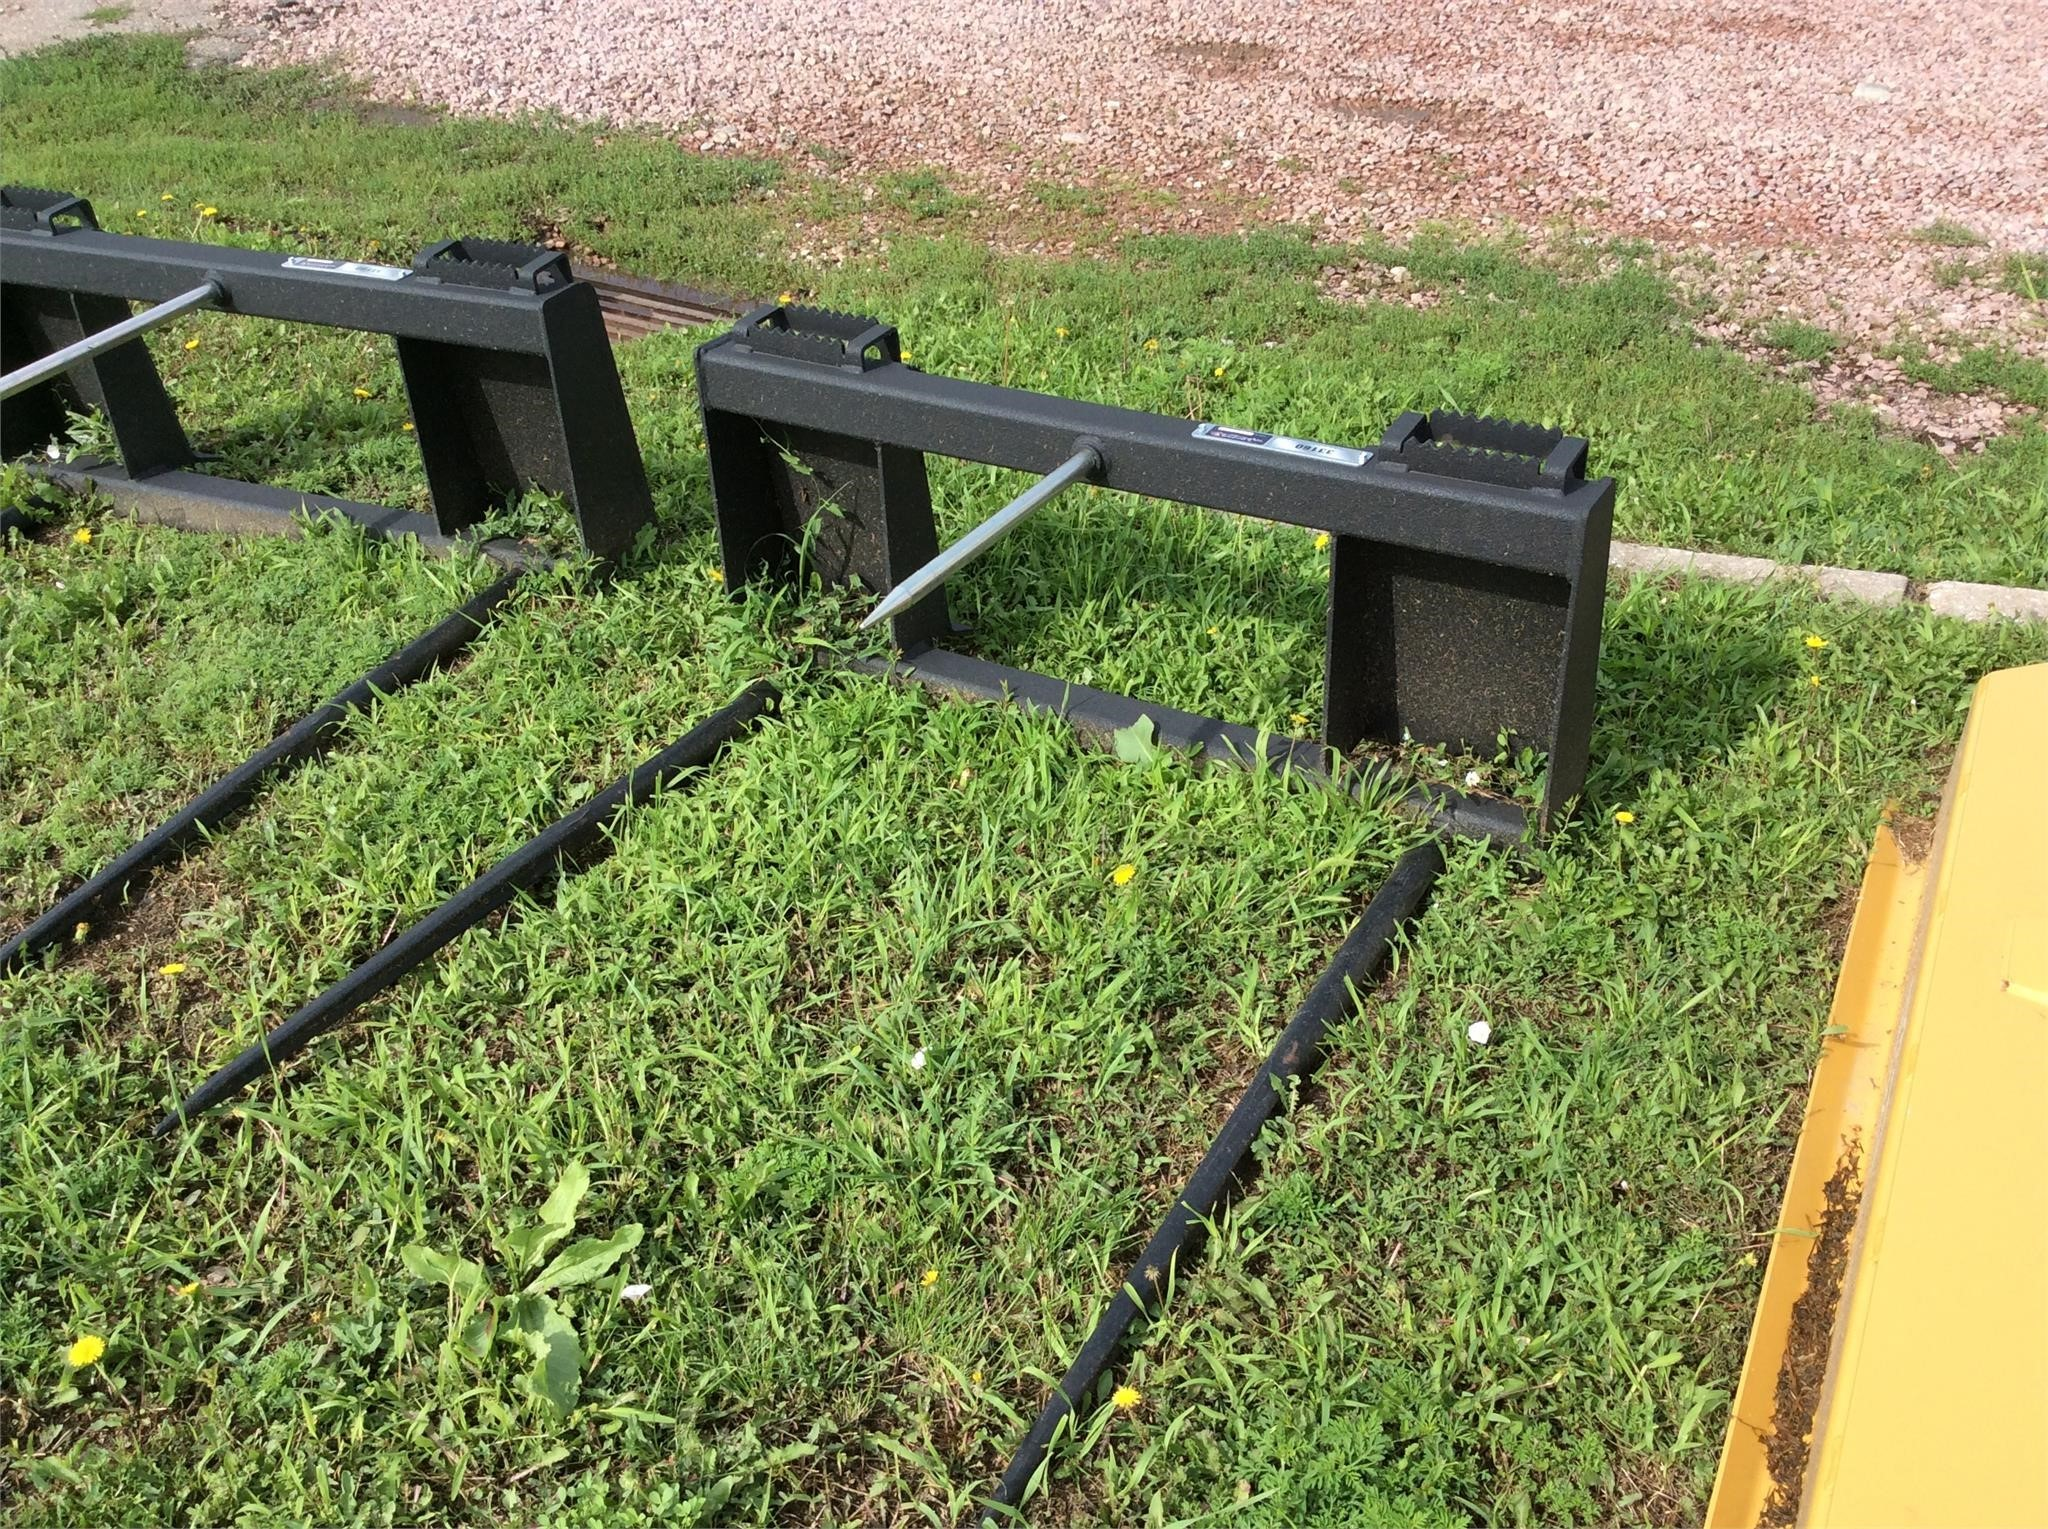 2019 LEGEND ATTACHMENTS 33160 Loader and Skid Steer Attachment